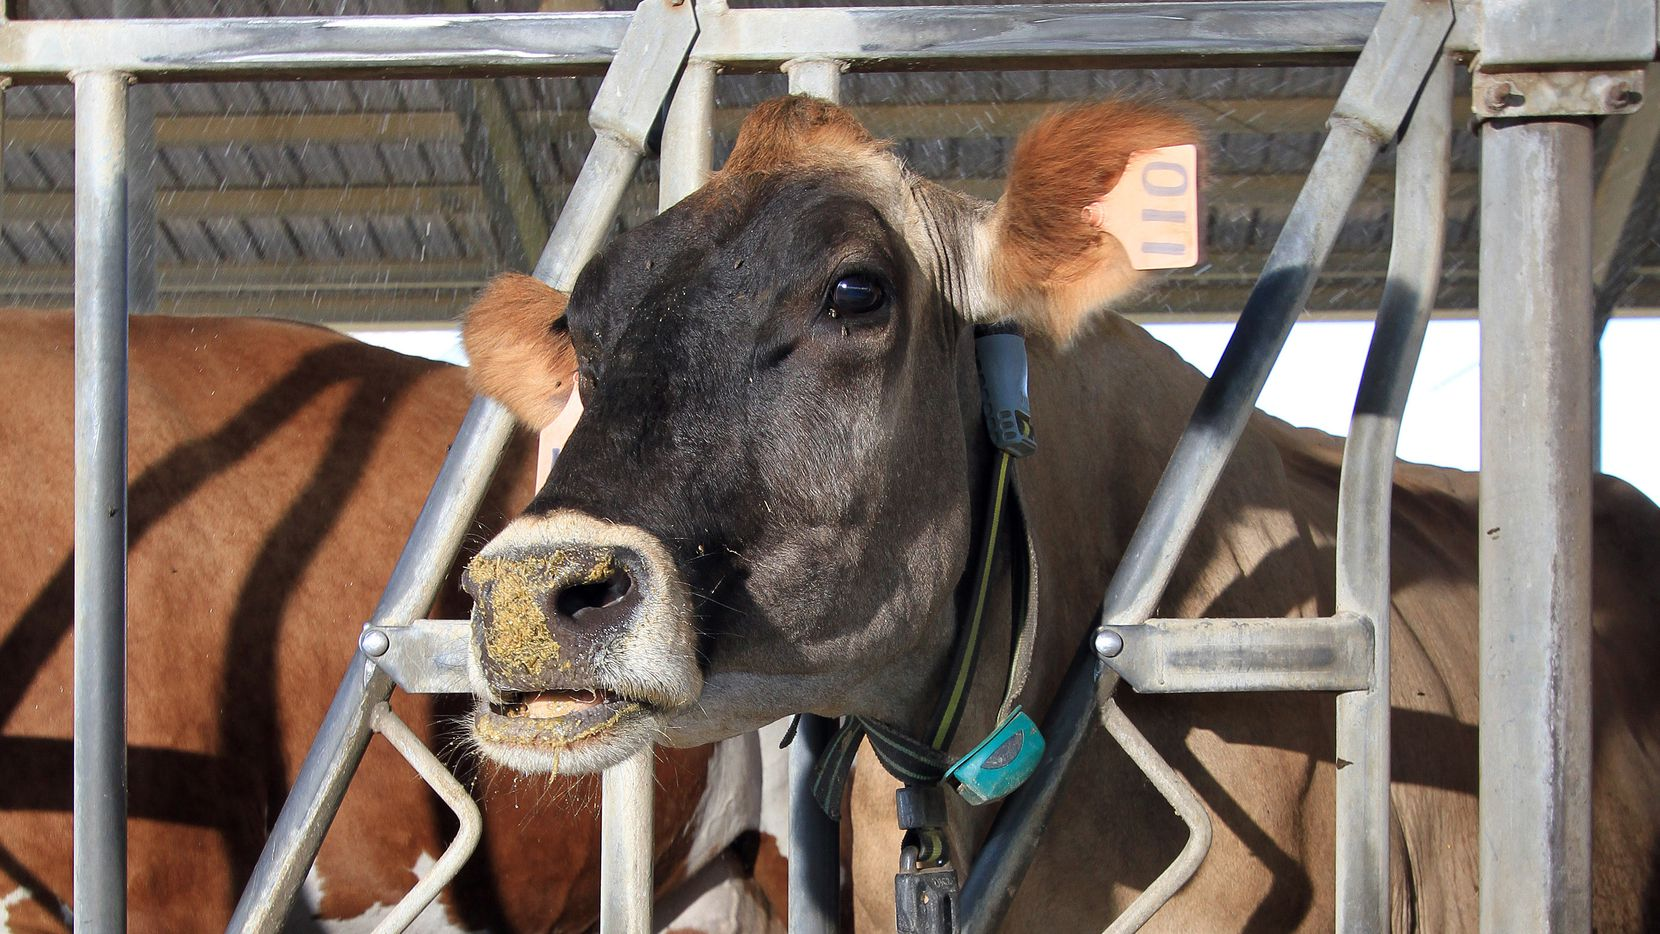 A dairy cow at the Tarleton State University's Southwest Regional Dairy Center in Stephenville wears a Fitbit-like monitoring device being tested by Texas A&M researchers.